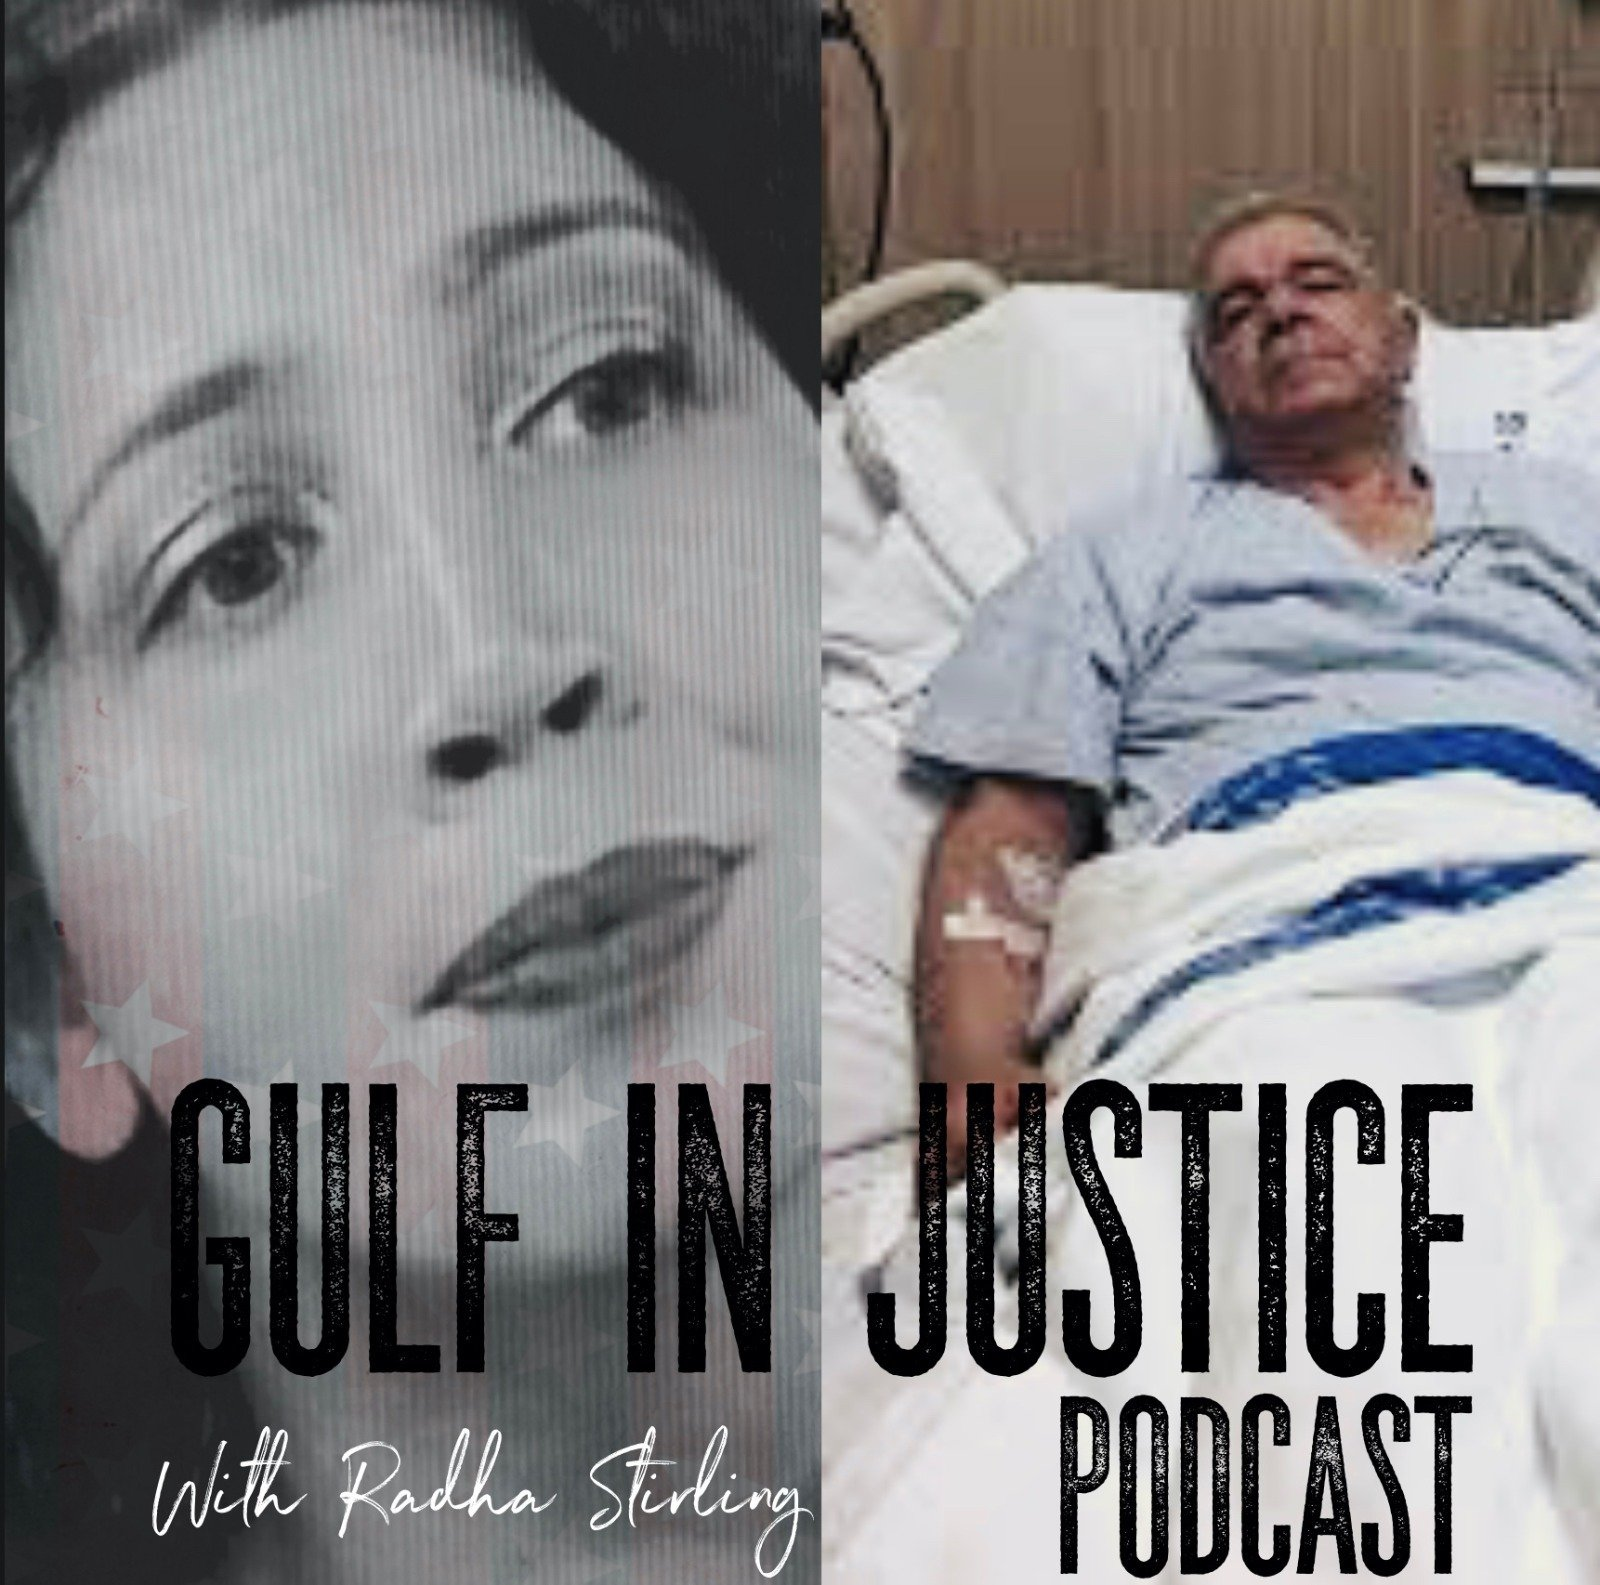 New Gulf in Justice Podcast Episode - The Case of Joseph Sarlak, Australian jailed in Doha by Qatari royal